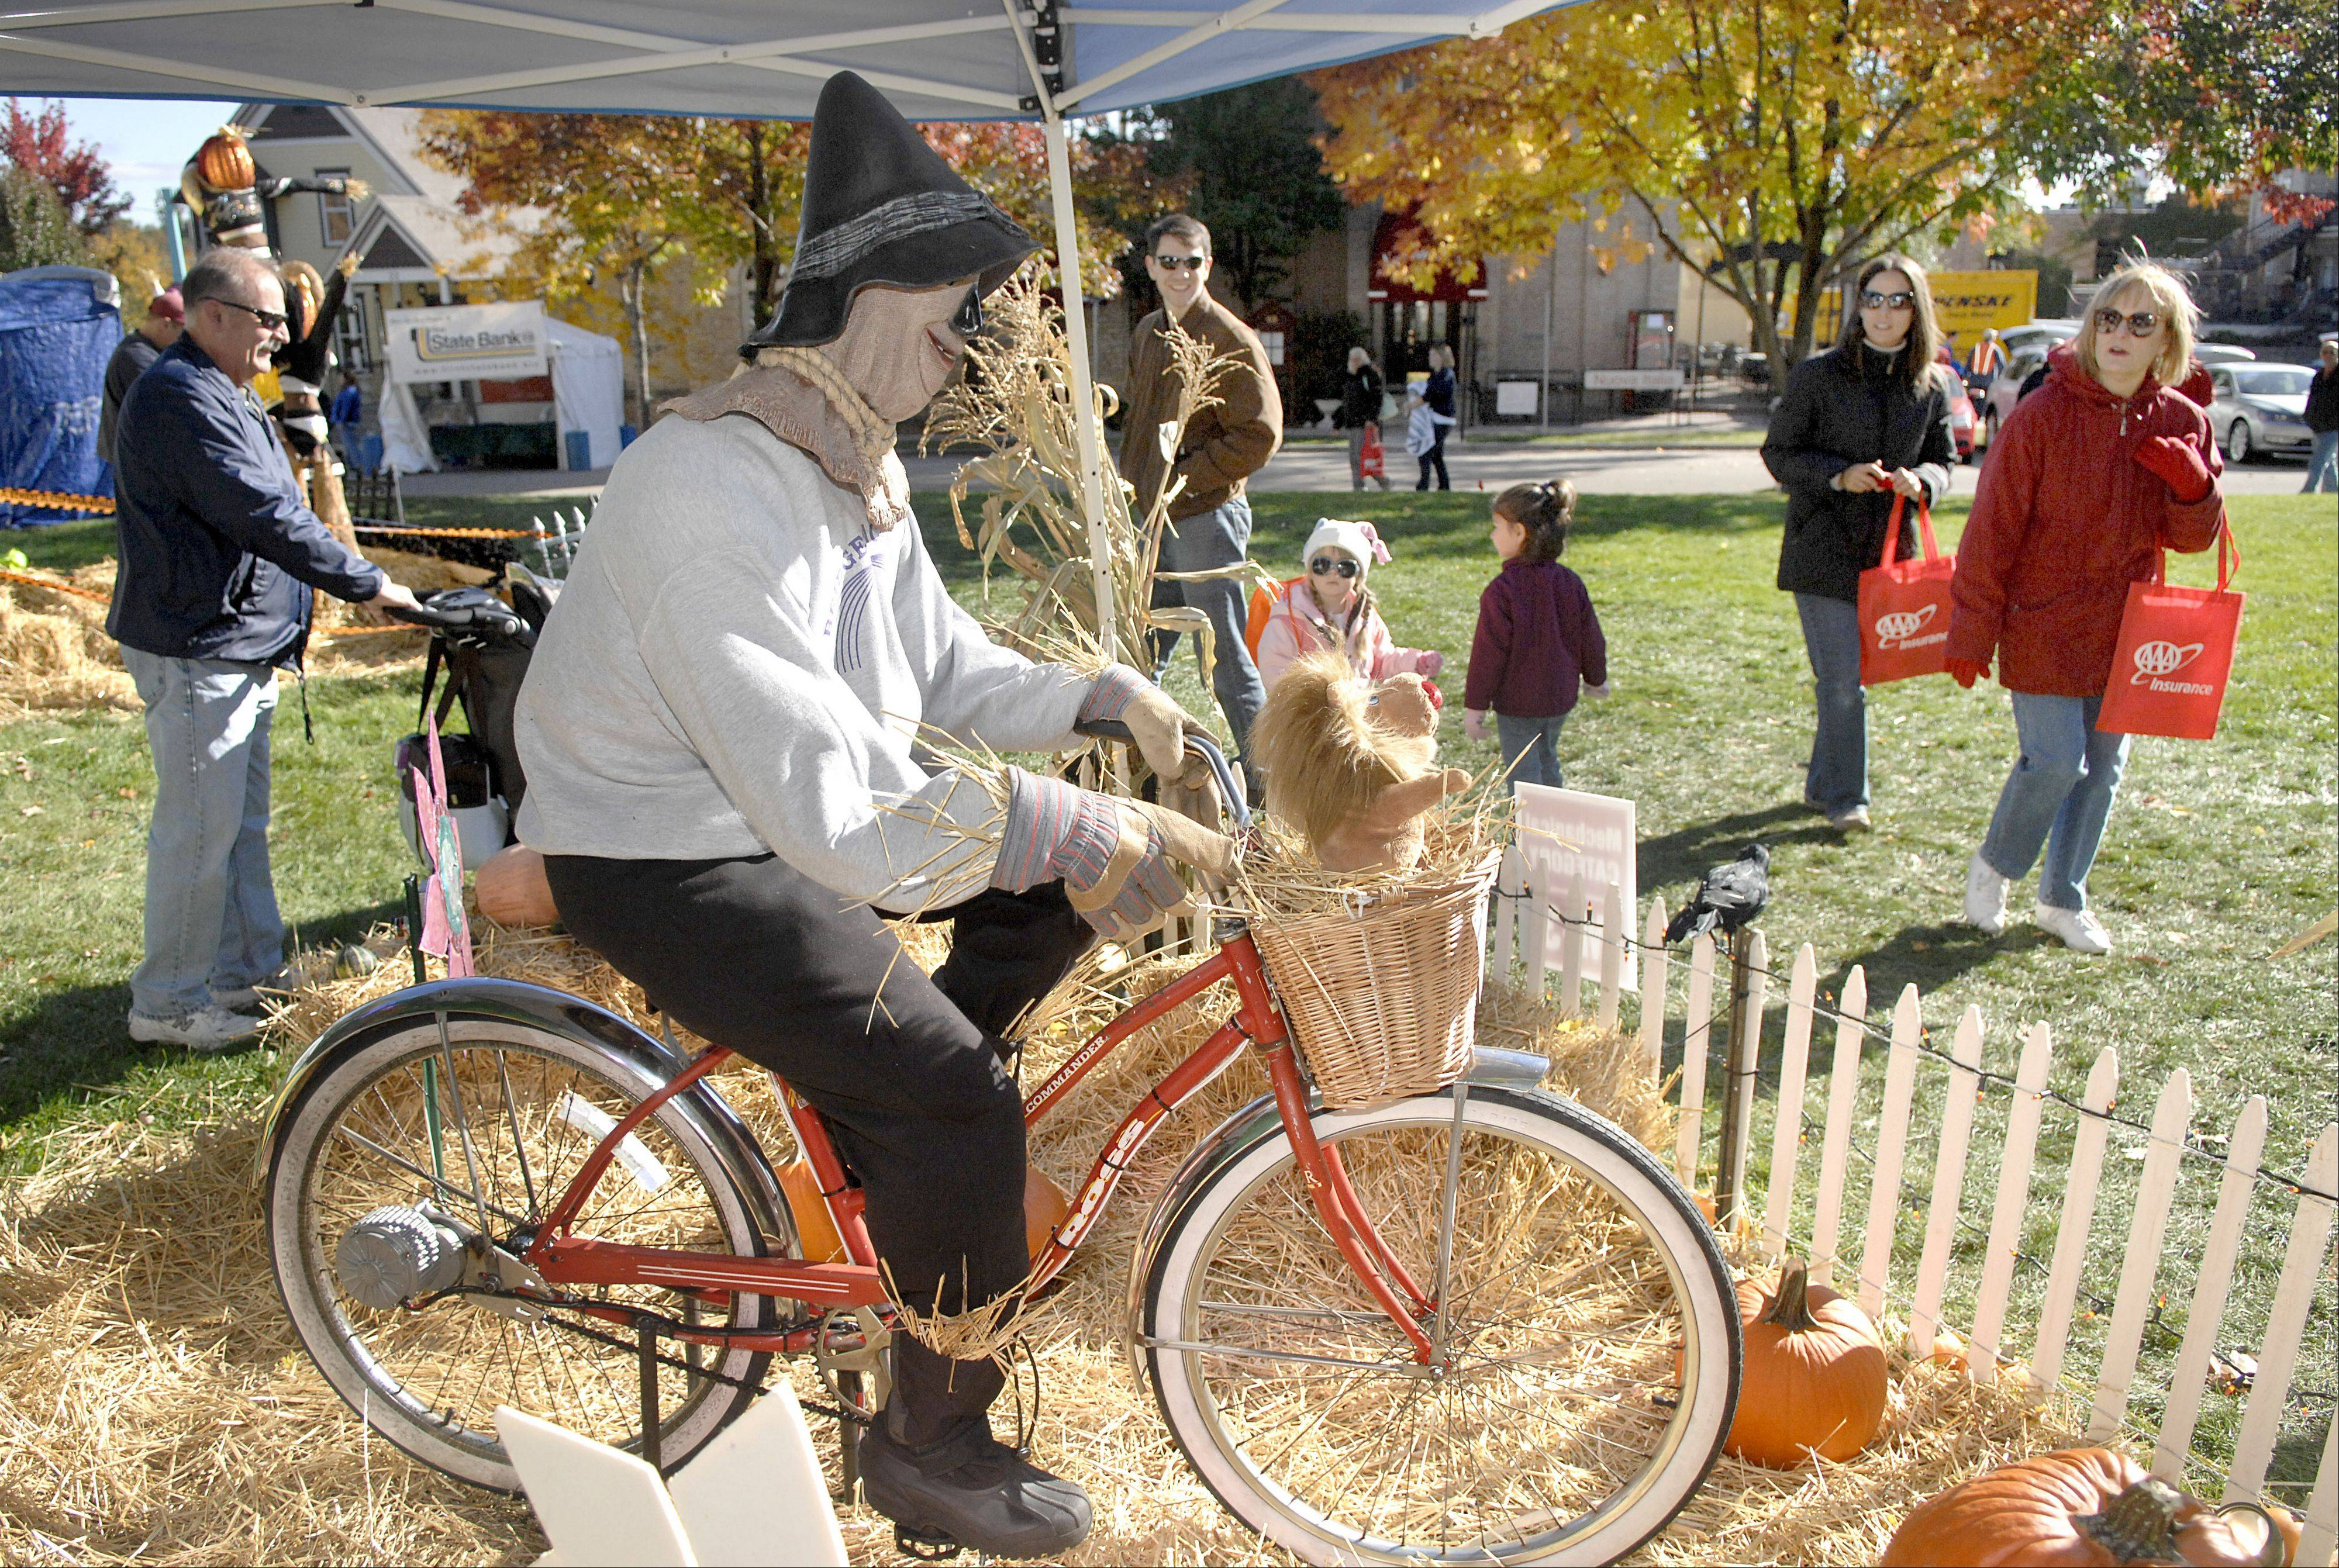 The Scarecrow from the Wizard of Oz rides a bike in the mechanical category entered by Bridges Montessori Academy at a previous St. Charles Scarecrow Festival.